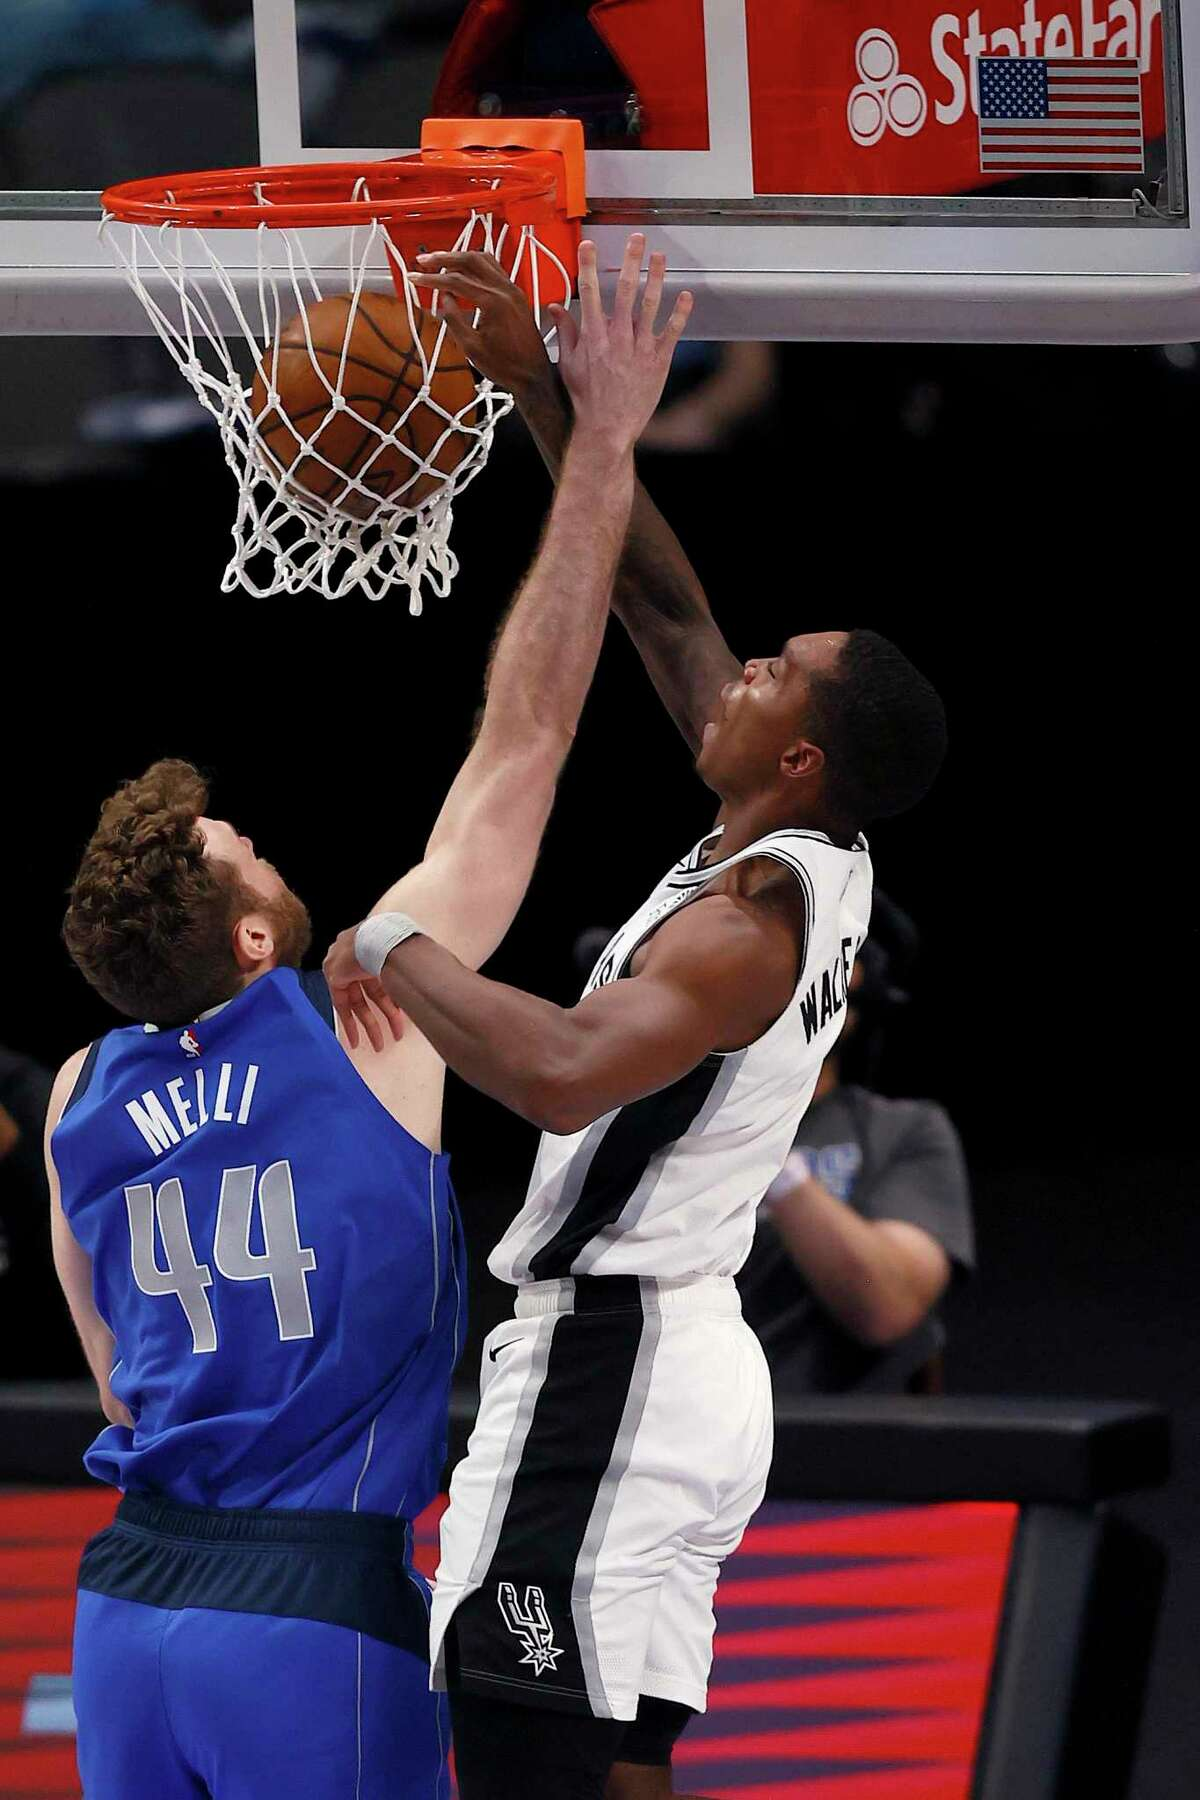 Lonnie Walker of the San Antonio Spurs drives to the basket and draws the foul against Nicolo Melli of the Dallas Mavericks in the second half at American Airlines Center on April 11, 2021 in Dallas.